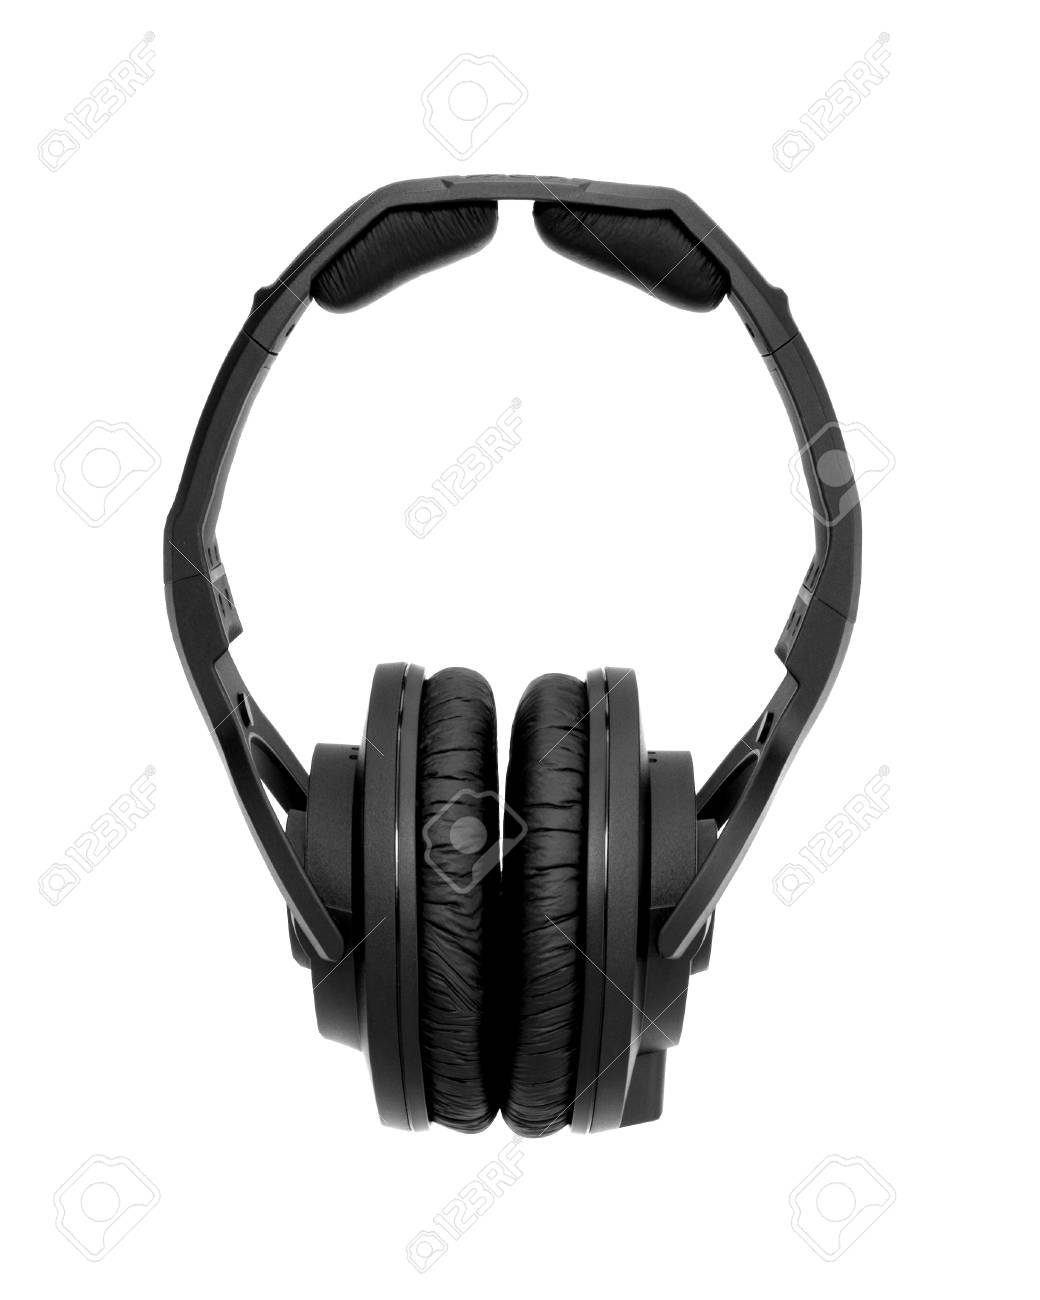 Headphones Isolated on a White Background Stock Photo - 10784334